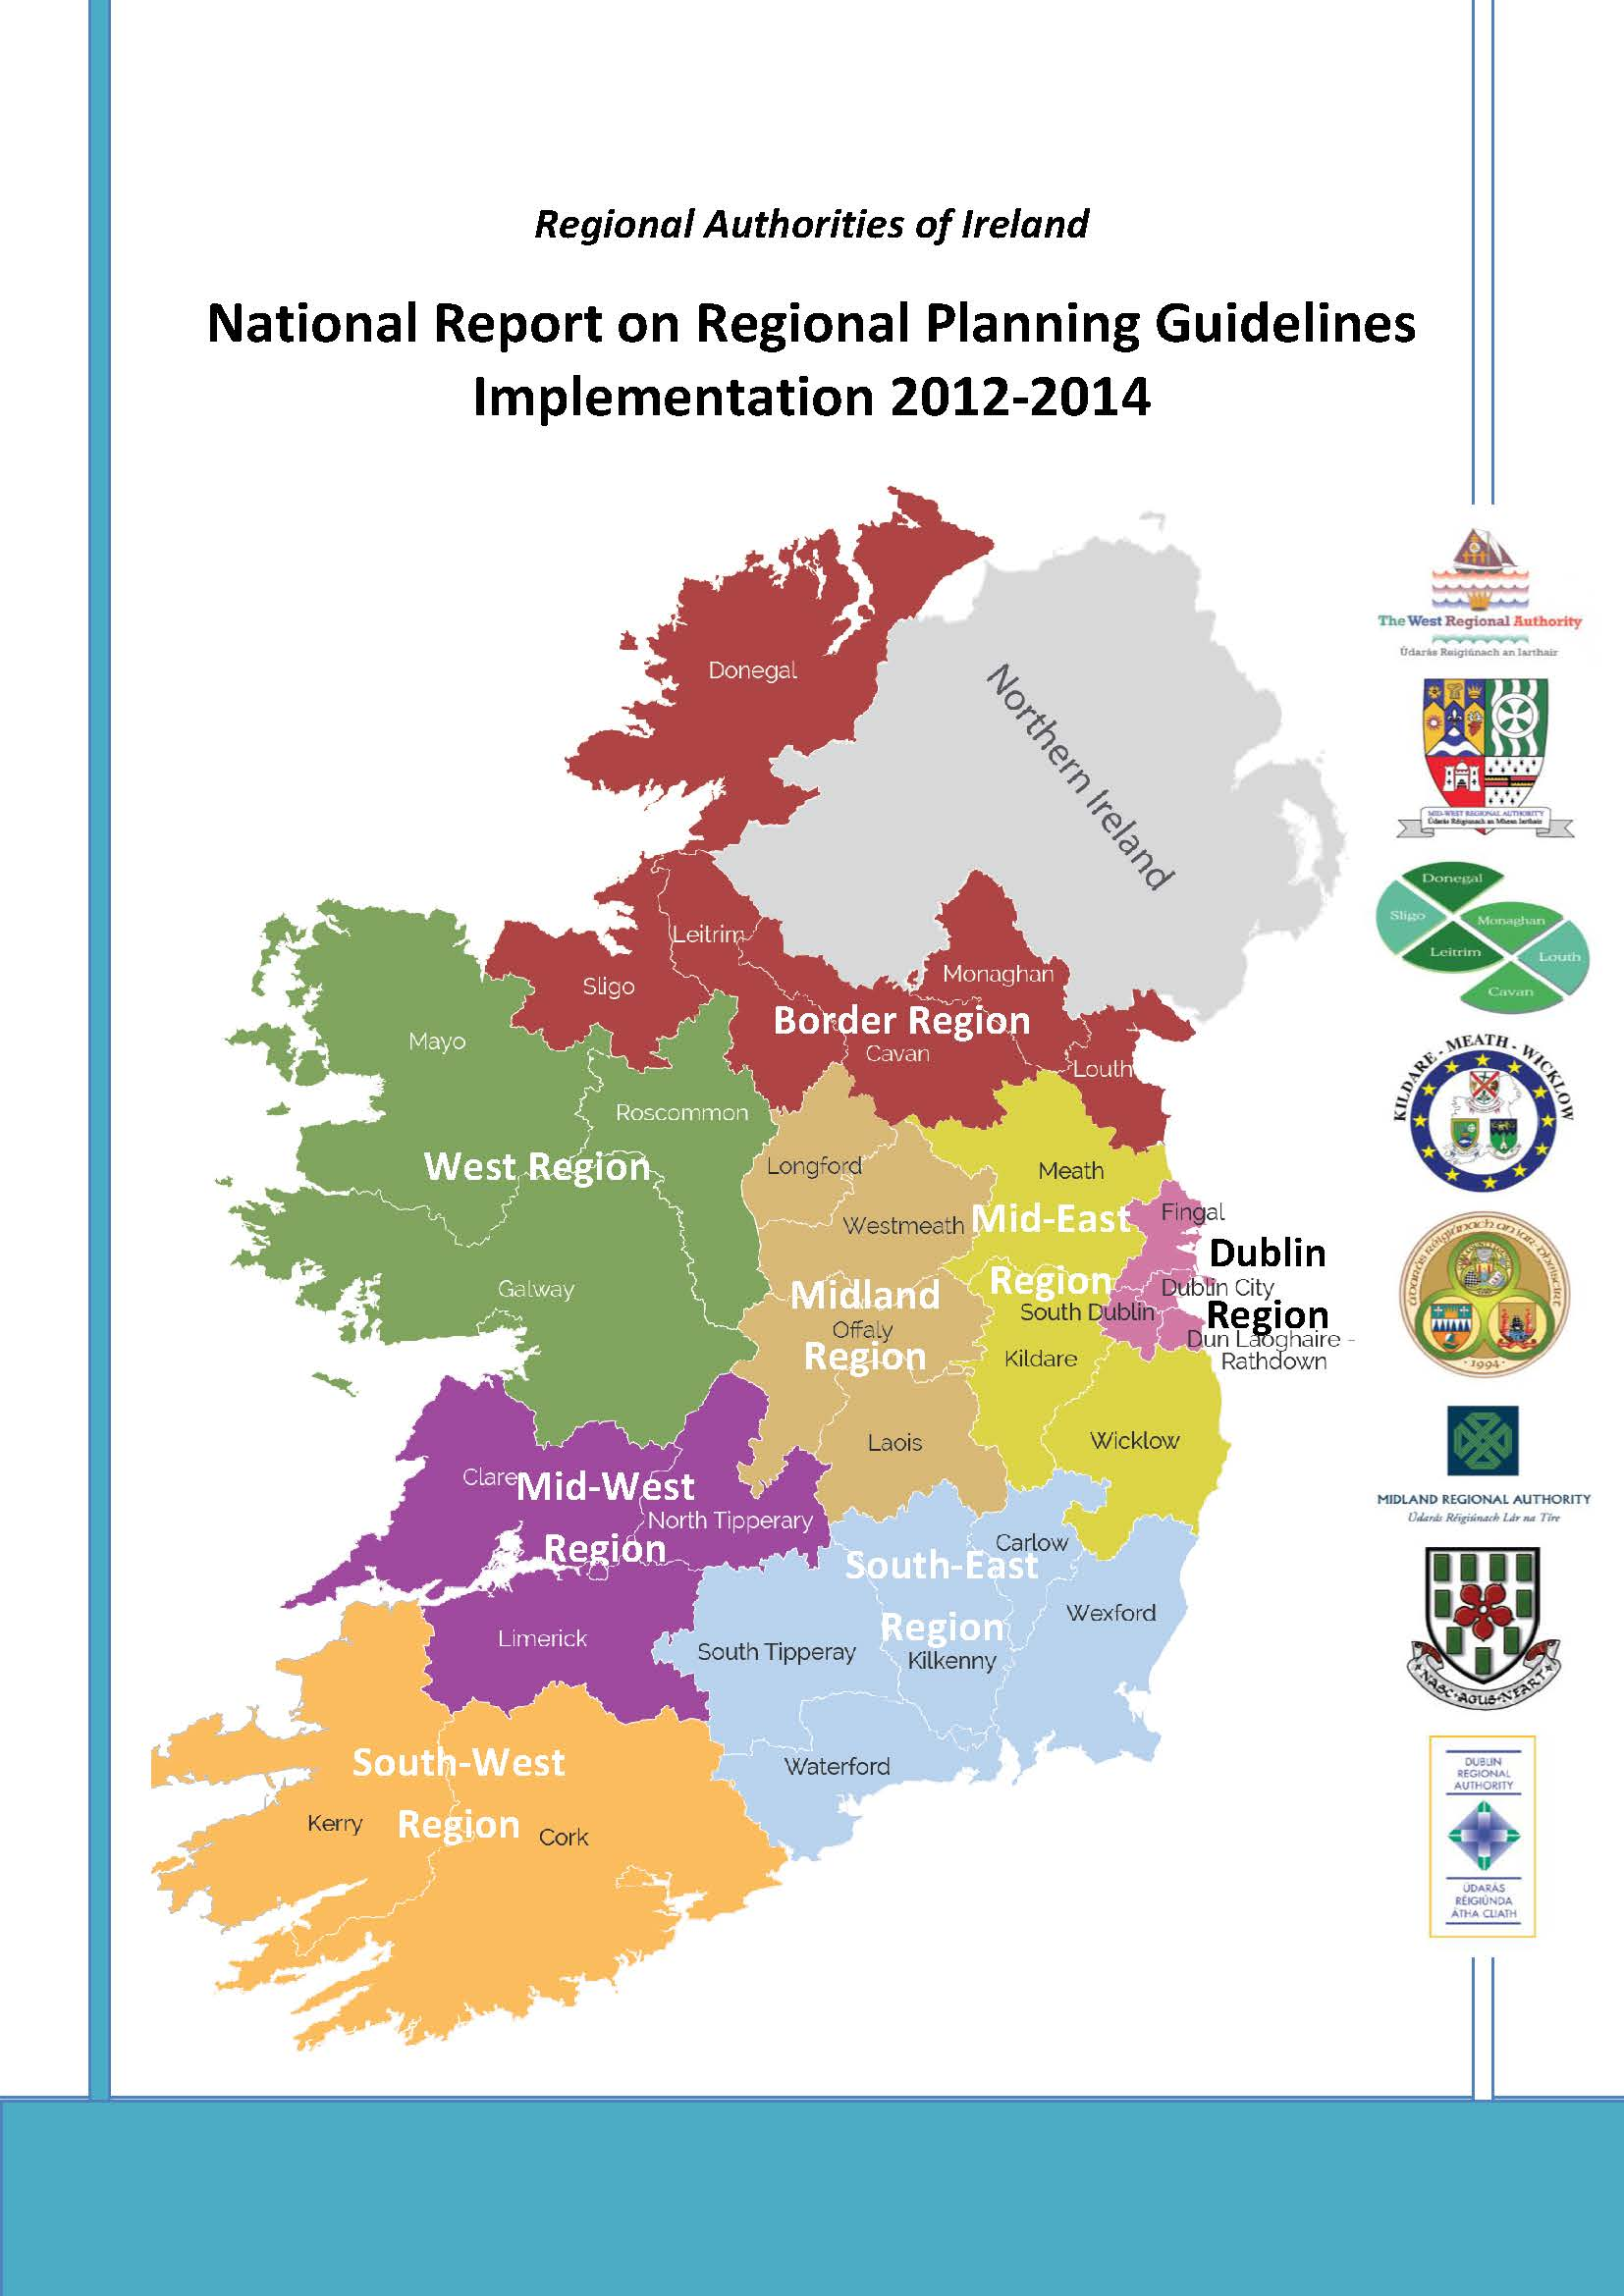 Regional-Planning-Guidelines-Implementation-Report-2012-14 pic